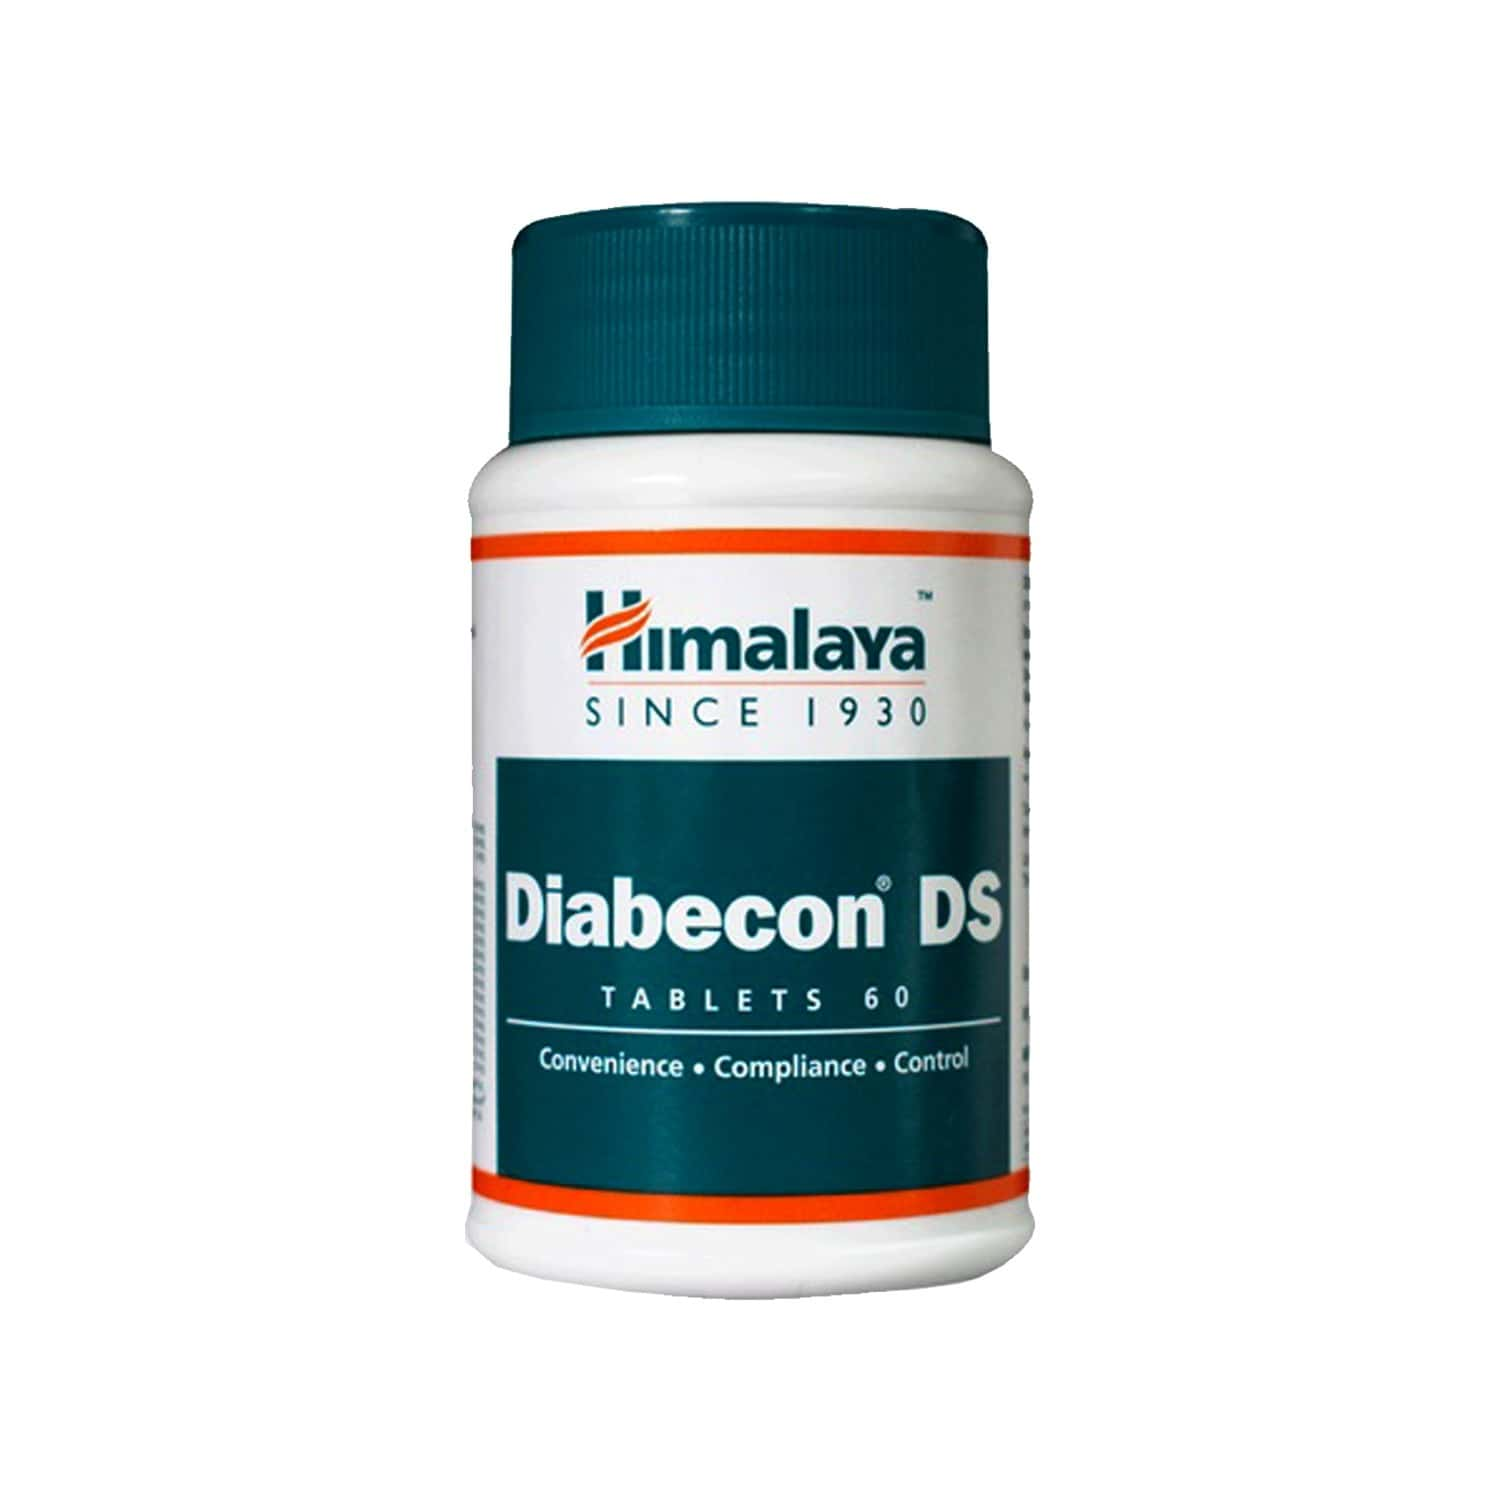 Himalaya Diabecon Ds Tablets - 60's